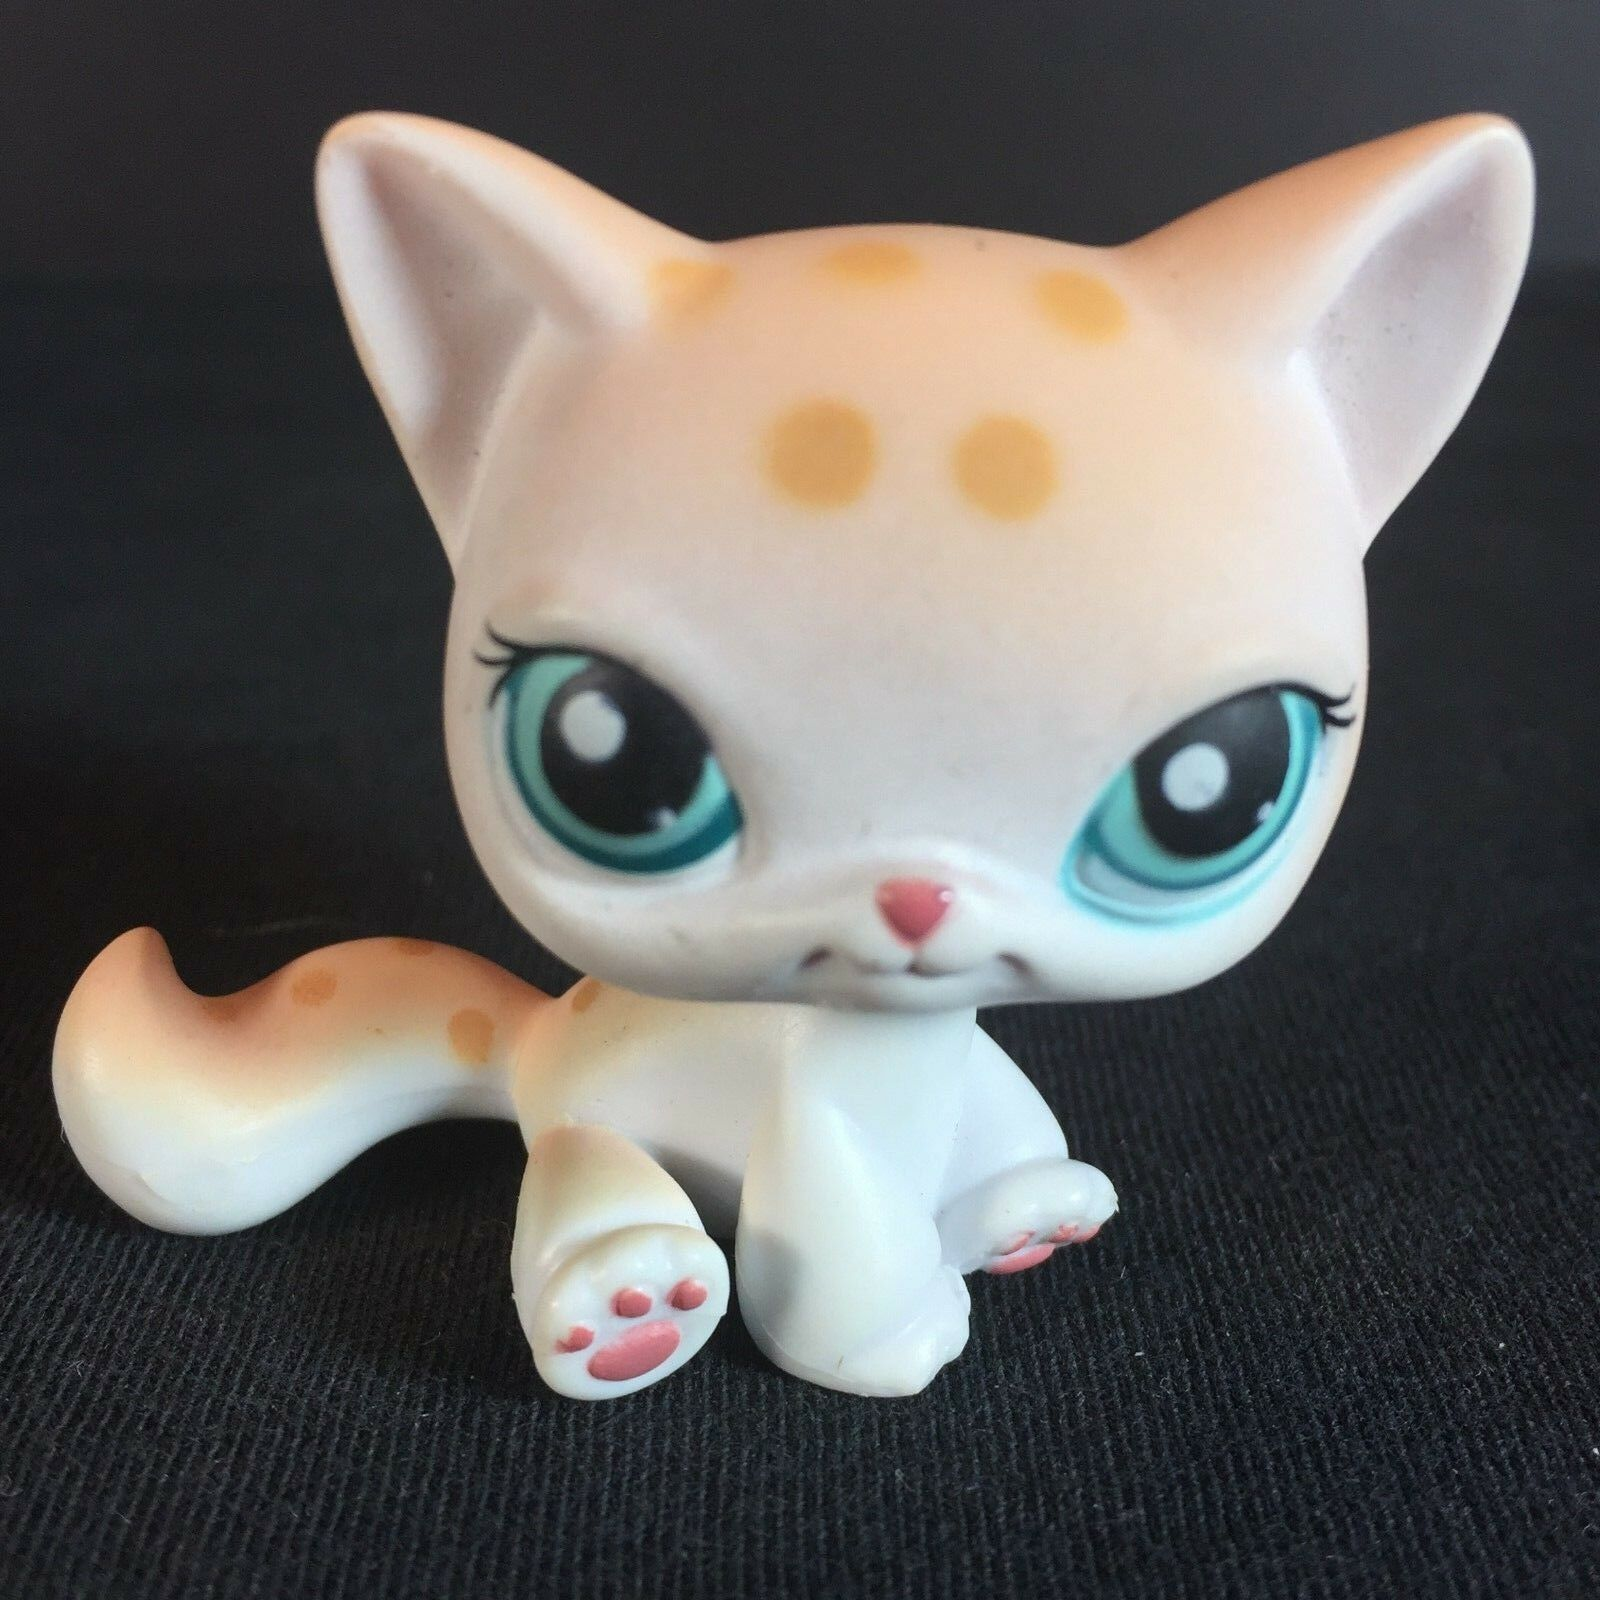 Old Original Pet Shop Lps Toys SIAMESE Cat #224 Spotted White Tan Leopard Kitty Cute Green Eyes Kitten For Girls Collection